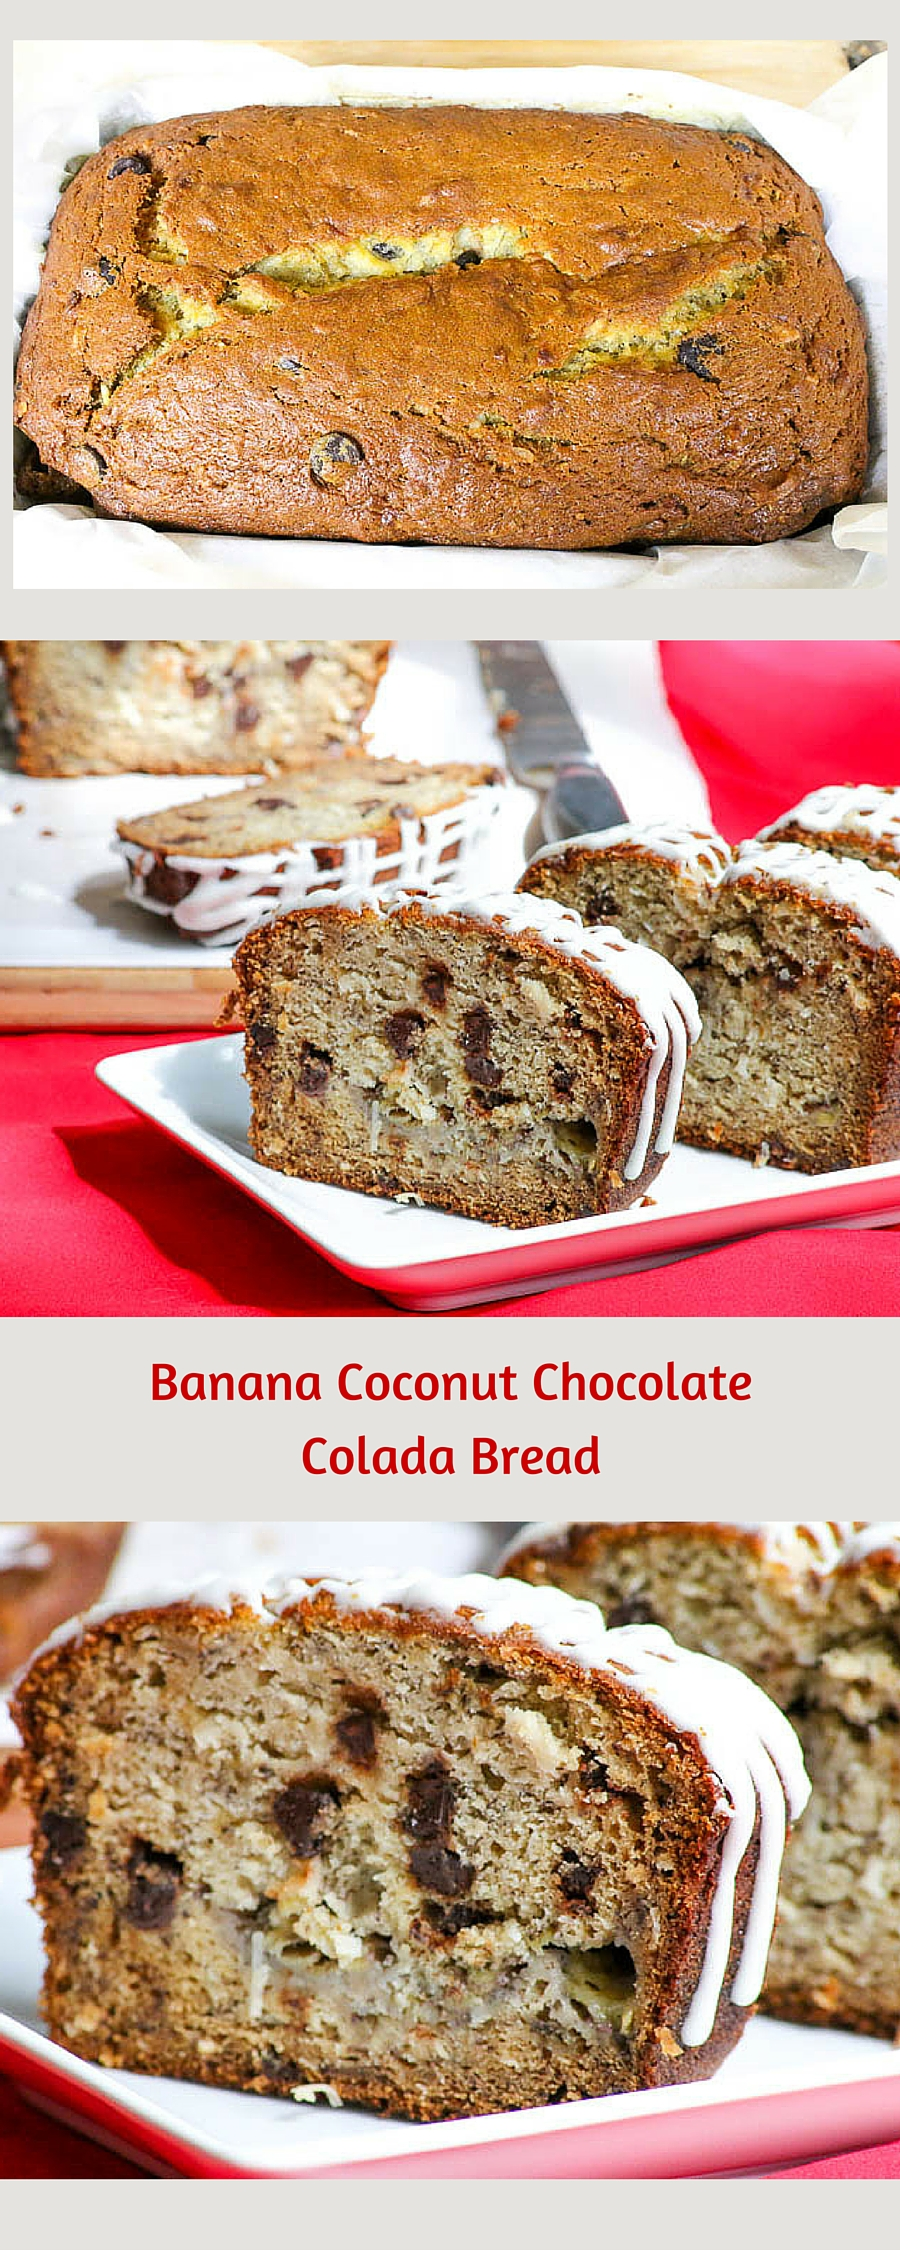 Weekly Meal Plan #21 - Banana Coconut Chocolate Colada Bread